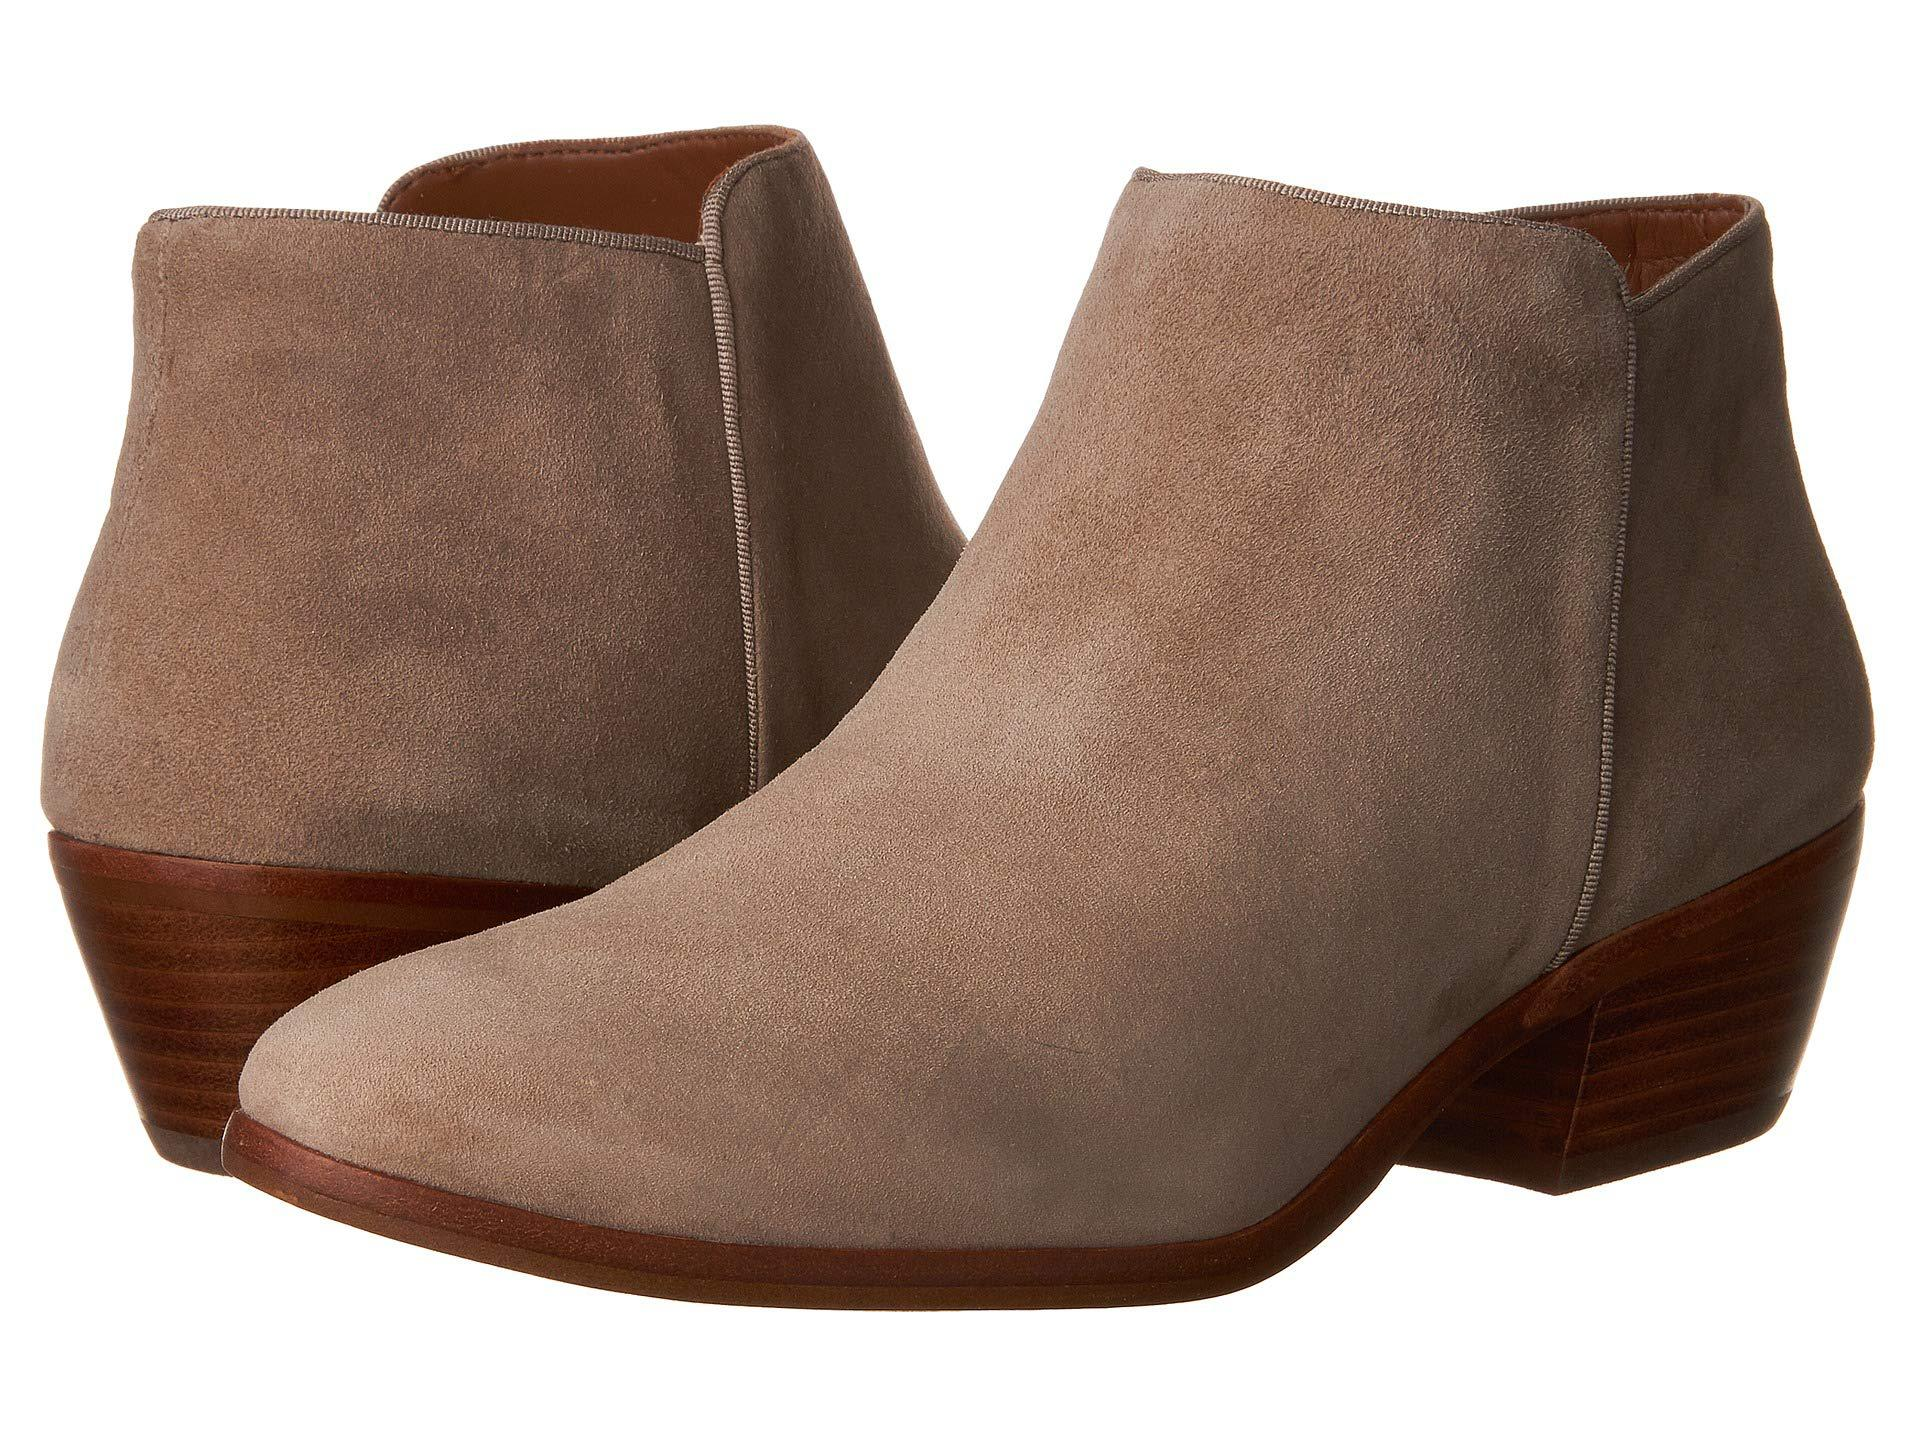 b30698f481e416 Lyst - Sam Edelman Petty Suede Booties - Save 29%